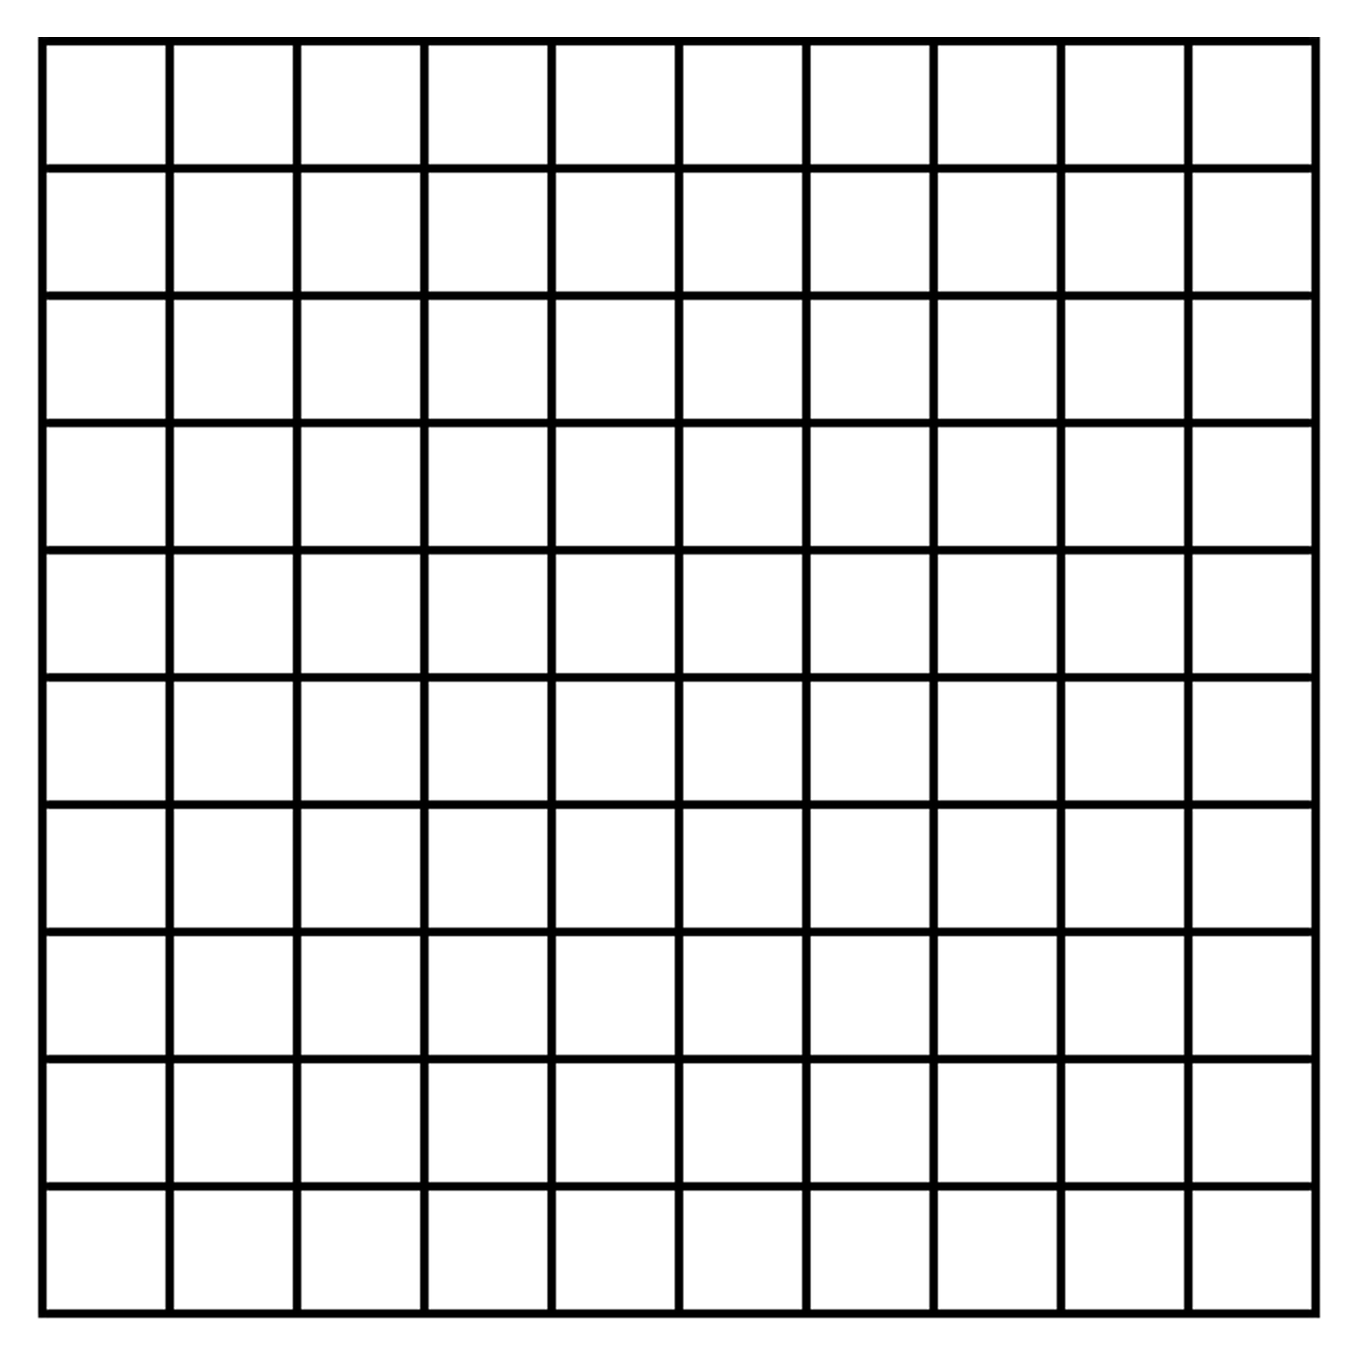 It's just an image of 100 Square Grid Printable for printing